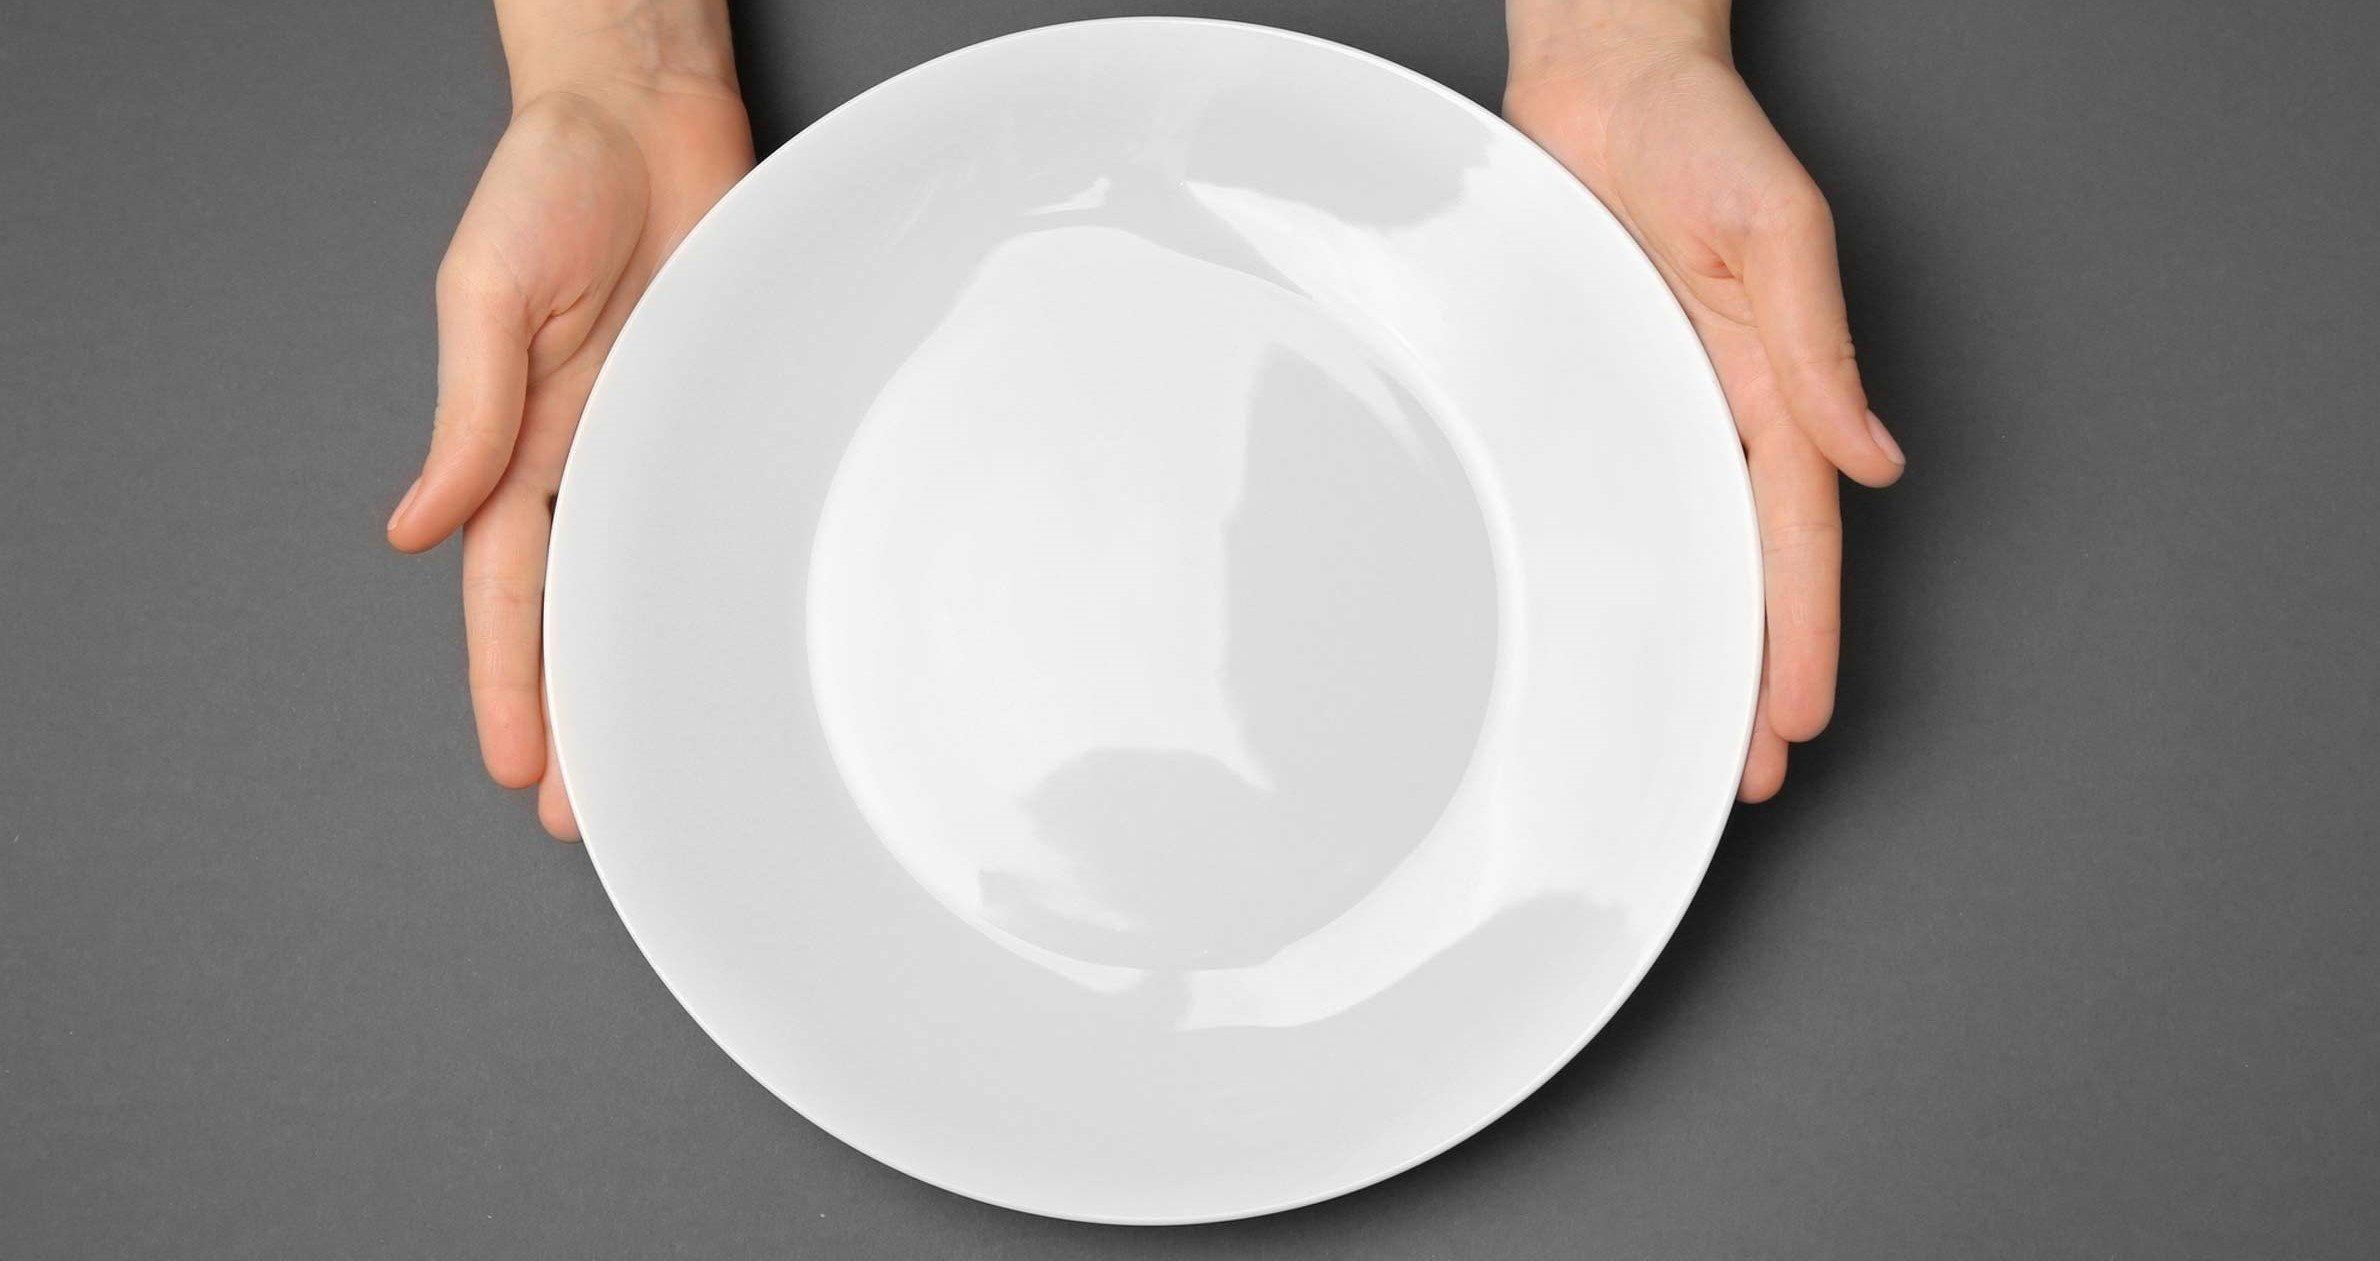 Intermittent Fasting Pros and Cons: Should You Try it